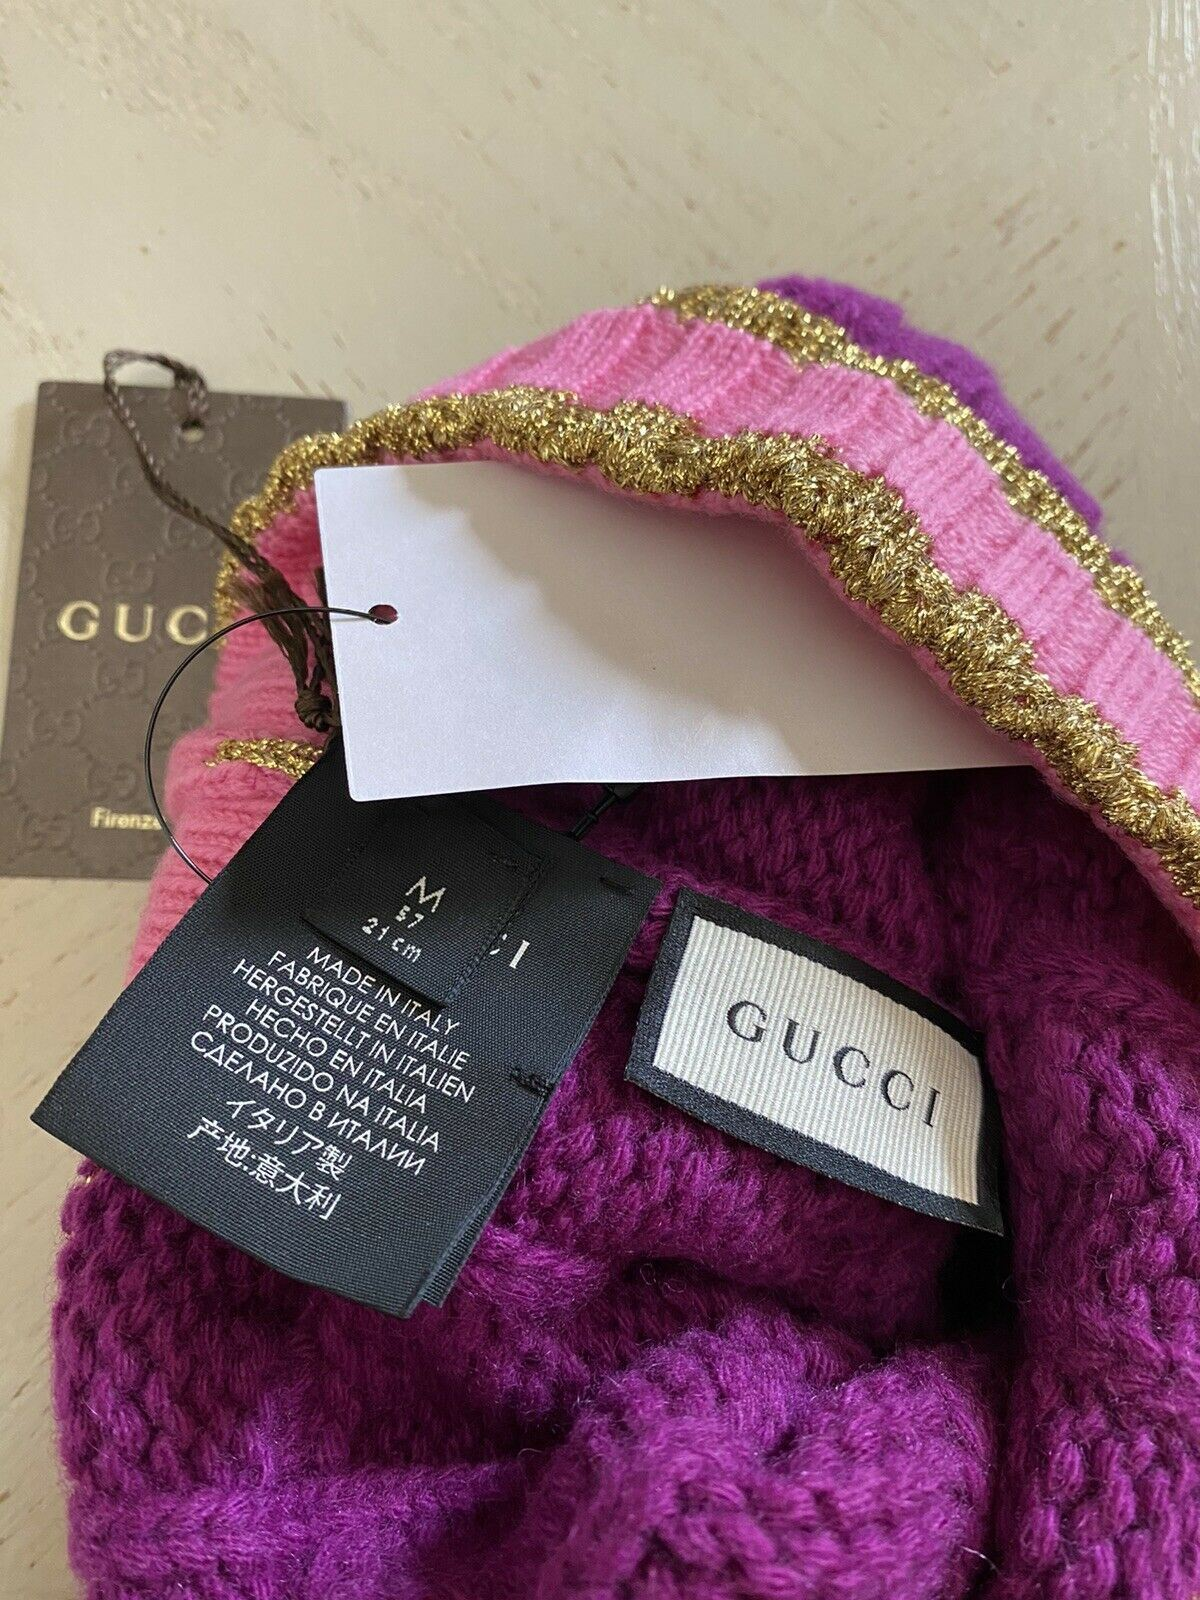 NWT $650 Gucci Womens Hat Magenta/Pink Size M Italy